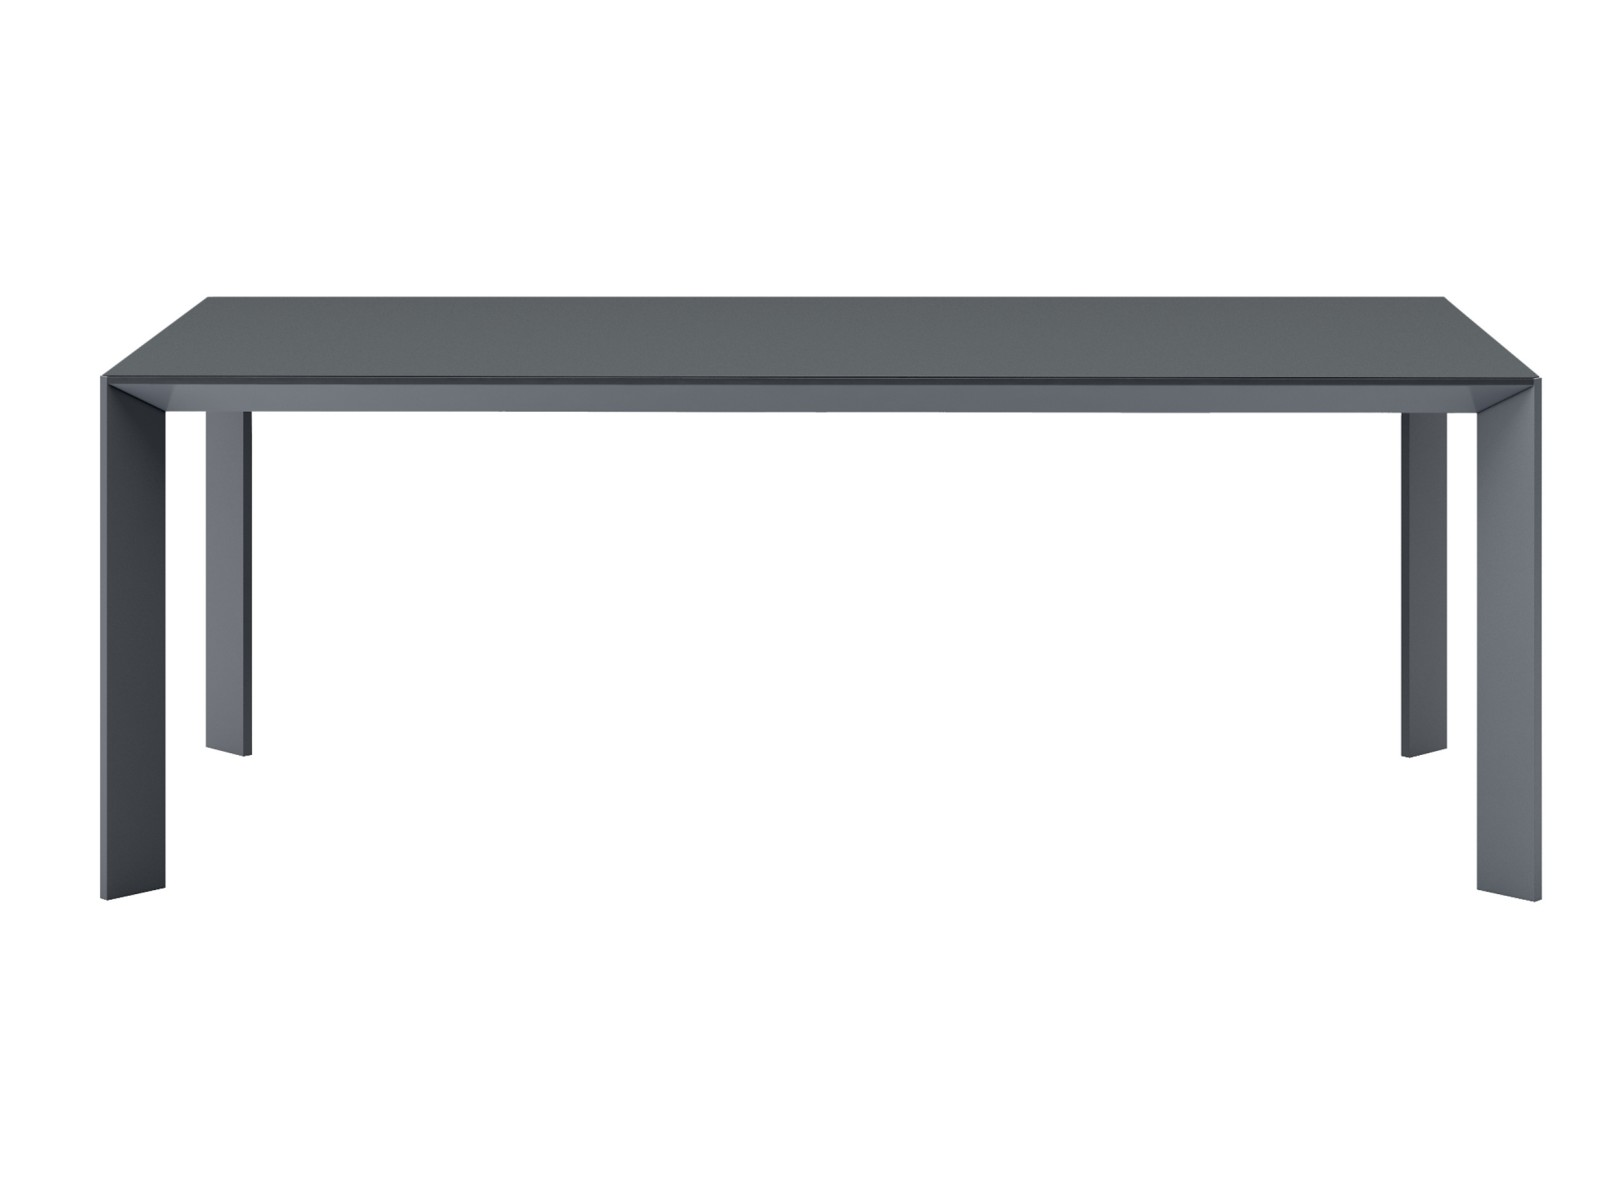 Mac Dining Table B42 Graphite-D85 Concrete-85 x 160-Yes